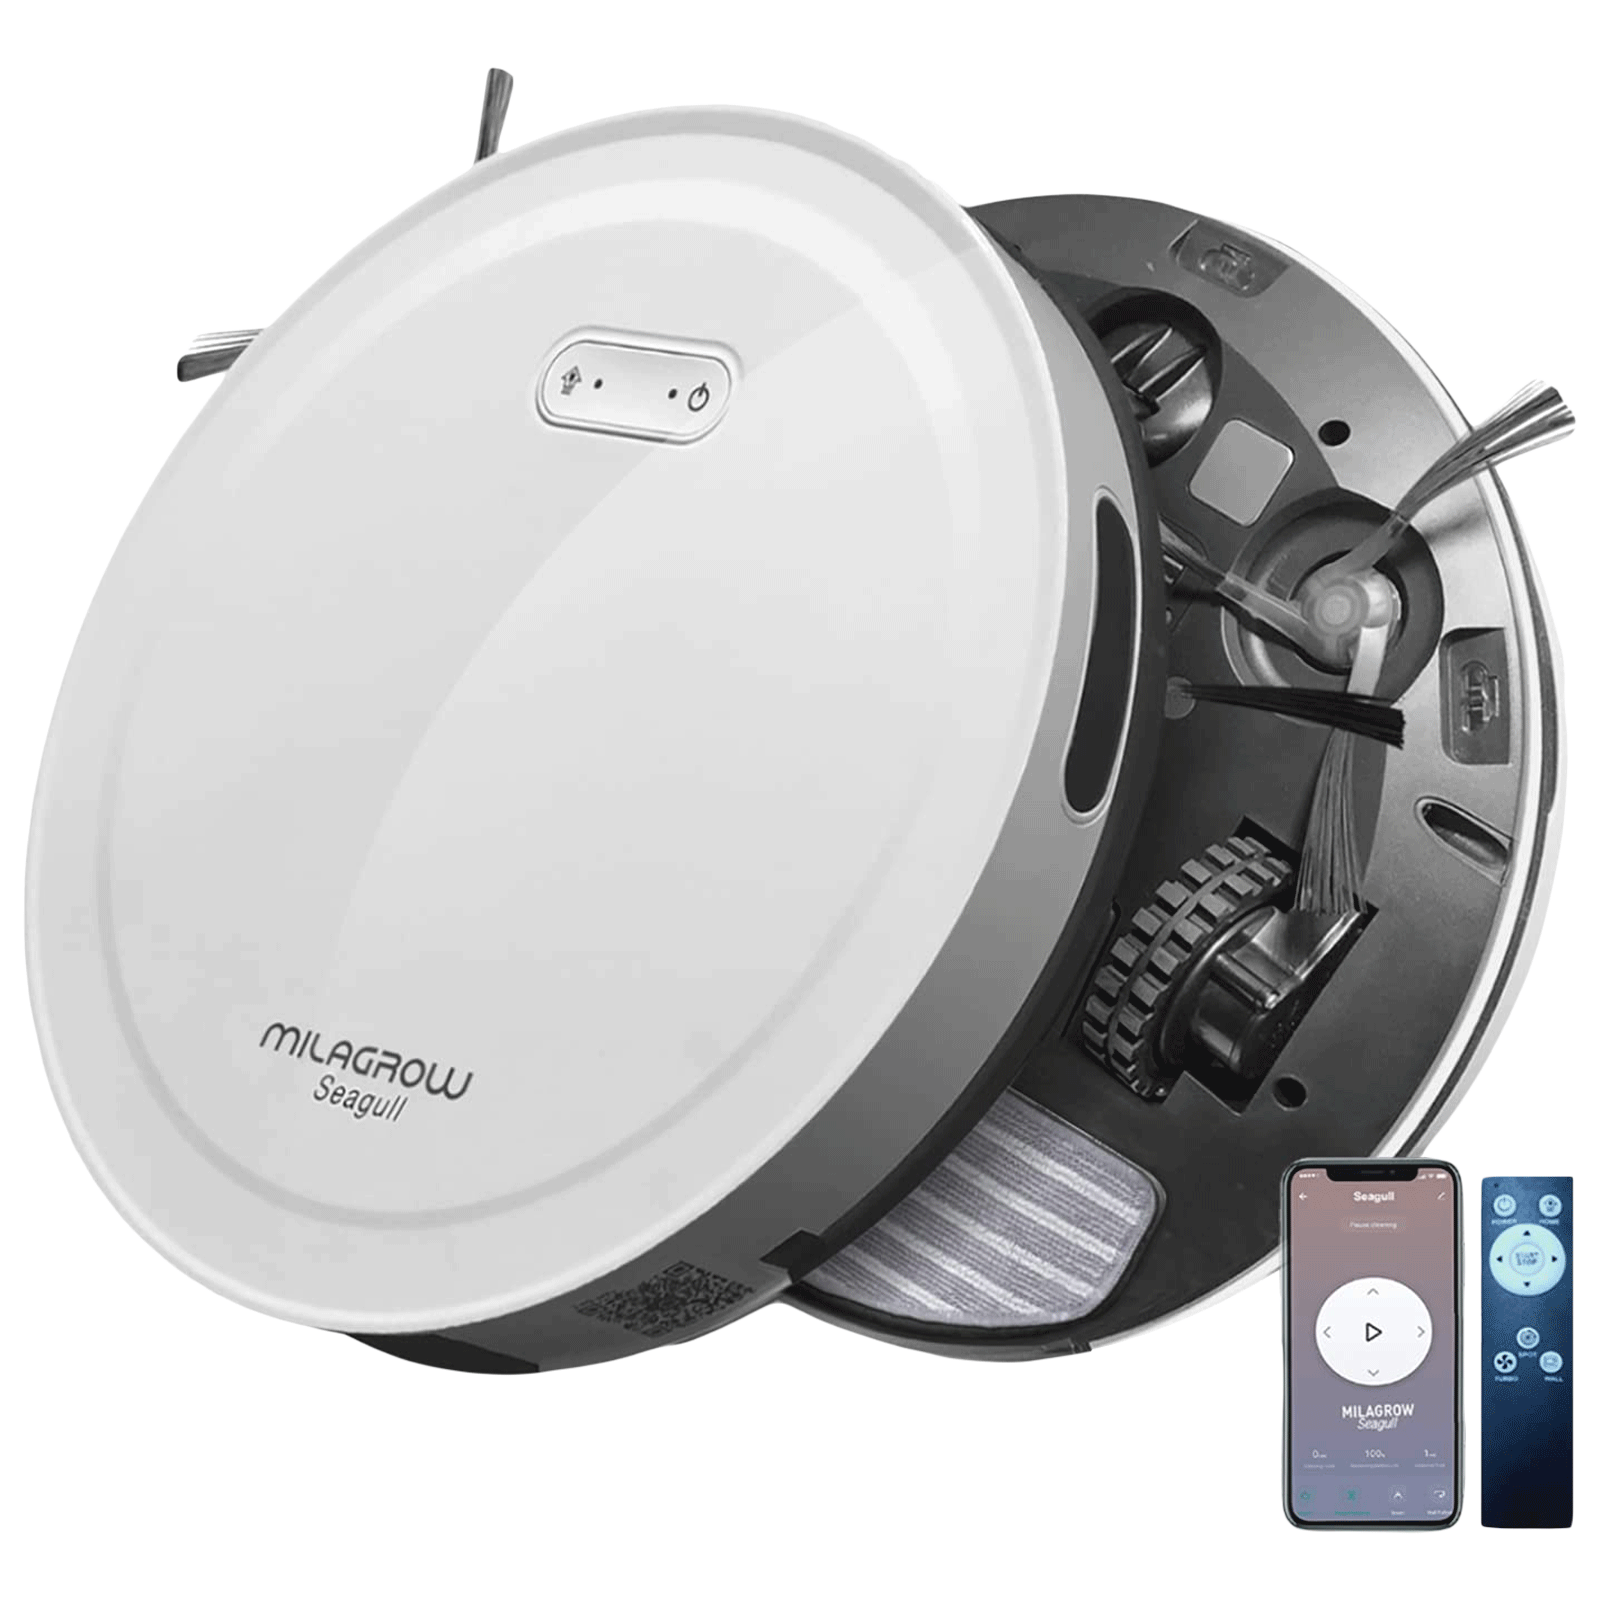 Milagrow Seagull Agua 30 Watts Robotic Vacuum Cleaner (0.55 Litres Tank, White)_1